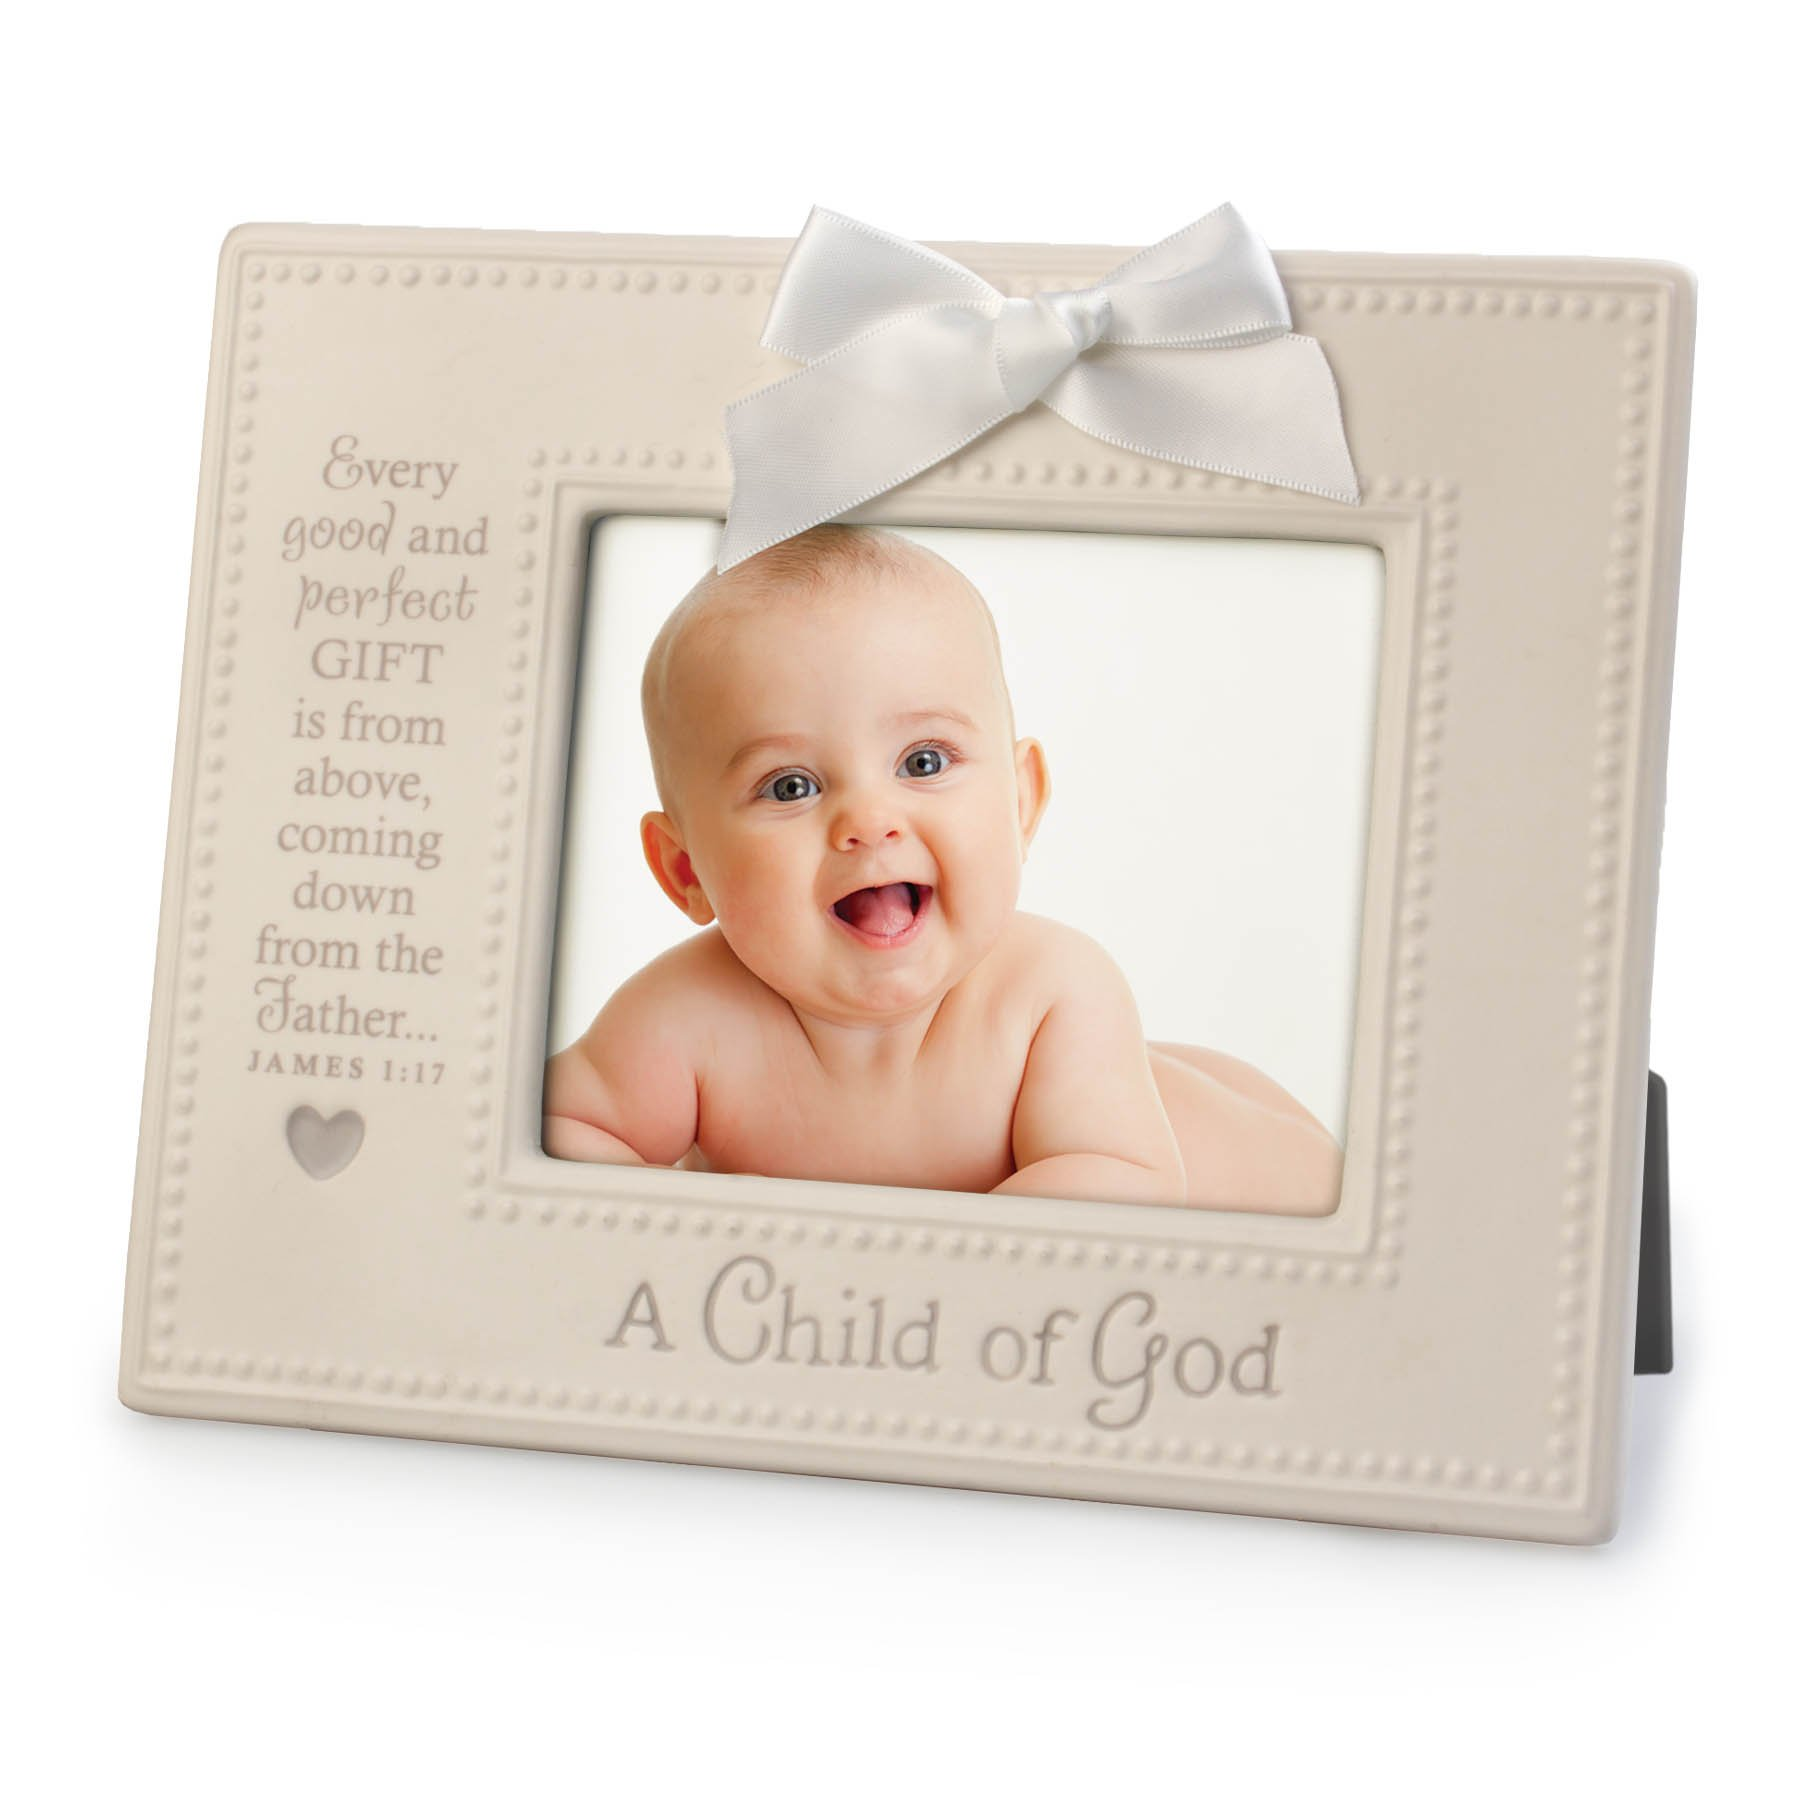 Lighthouse Christian Products A Child of God Ceramic Frame, 4 x 6'', White/Gray